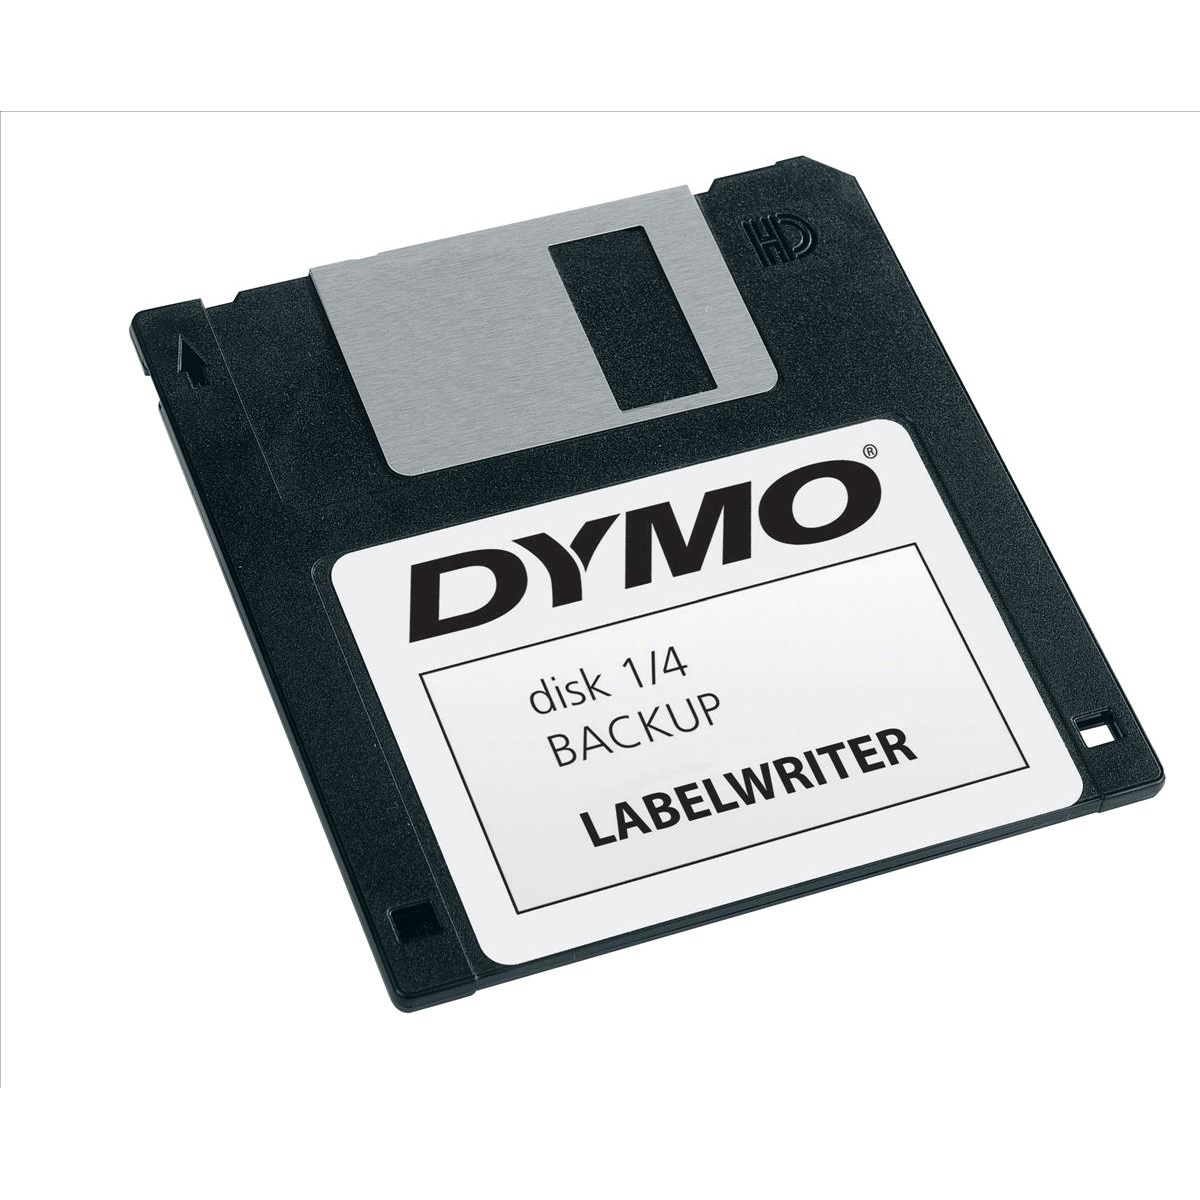 Dymo Labelwriter Labels 3.5 inch Diskette 54x70mm White Ref 99015 S0722440 Pack 320